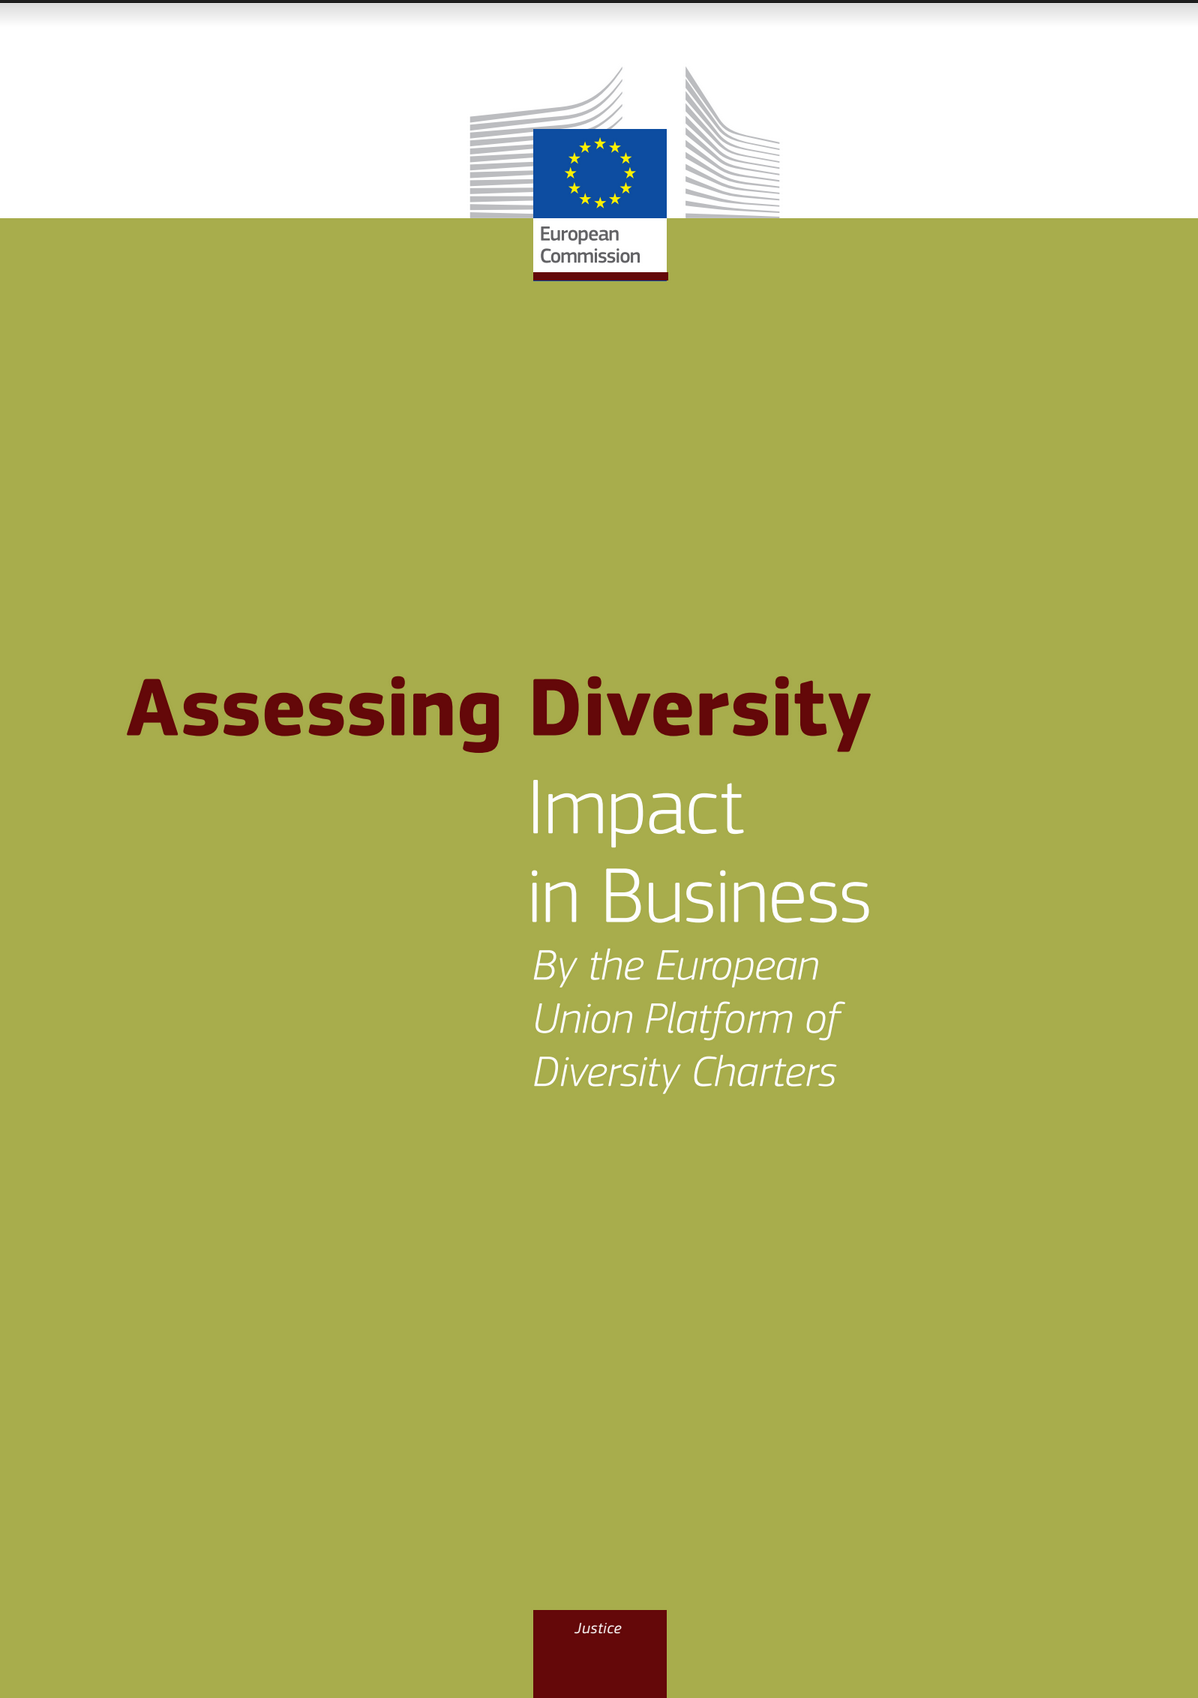 assessing diversity impact in business Assessing Diversity Impact in Business Assessing Diversity Impact in Business capa